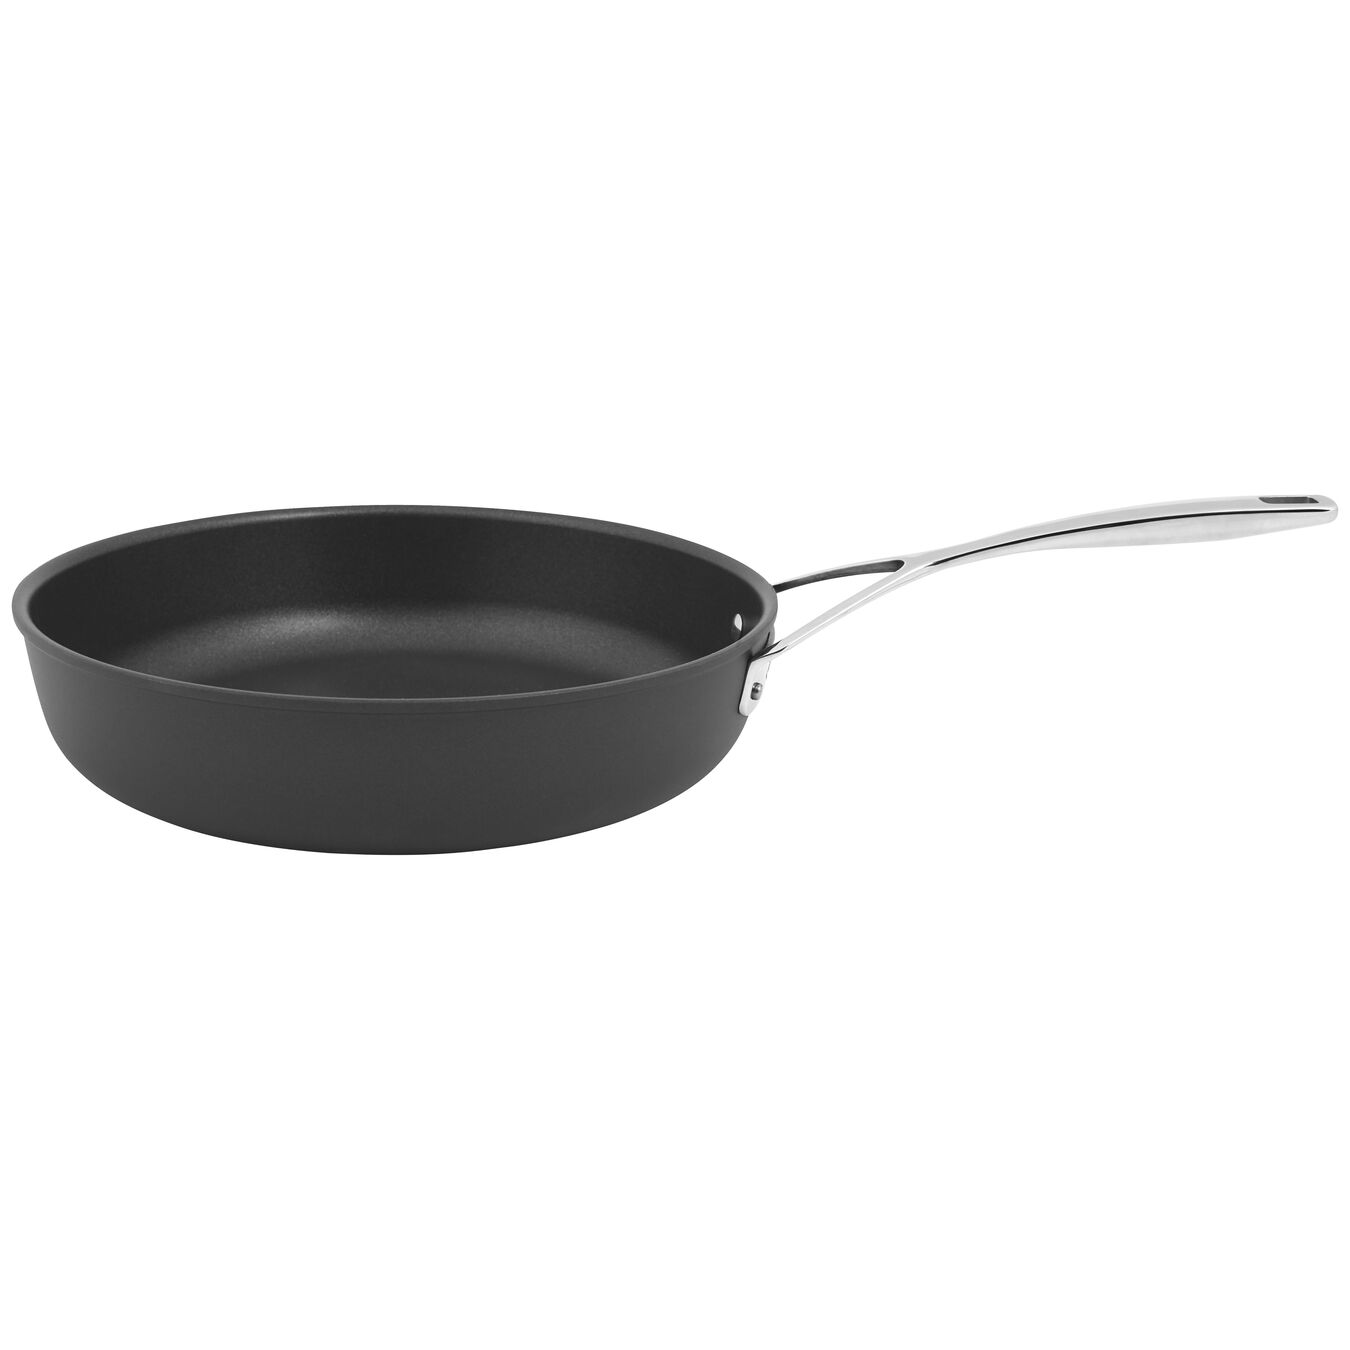 28 cm / 11 inch Aluminum Frying pan high-sided,,large 1